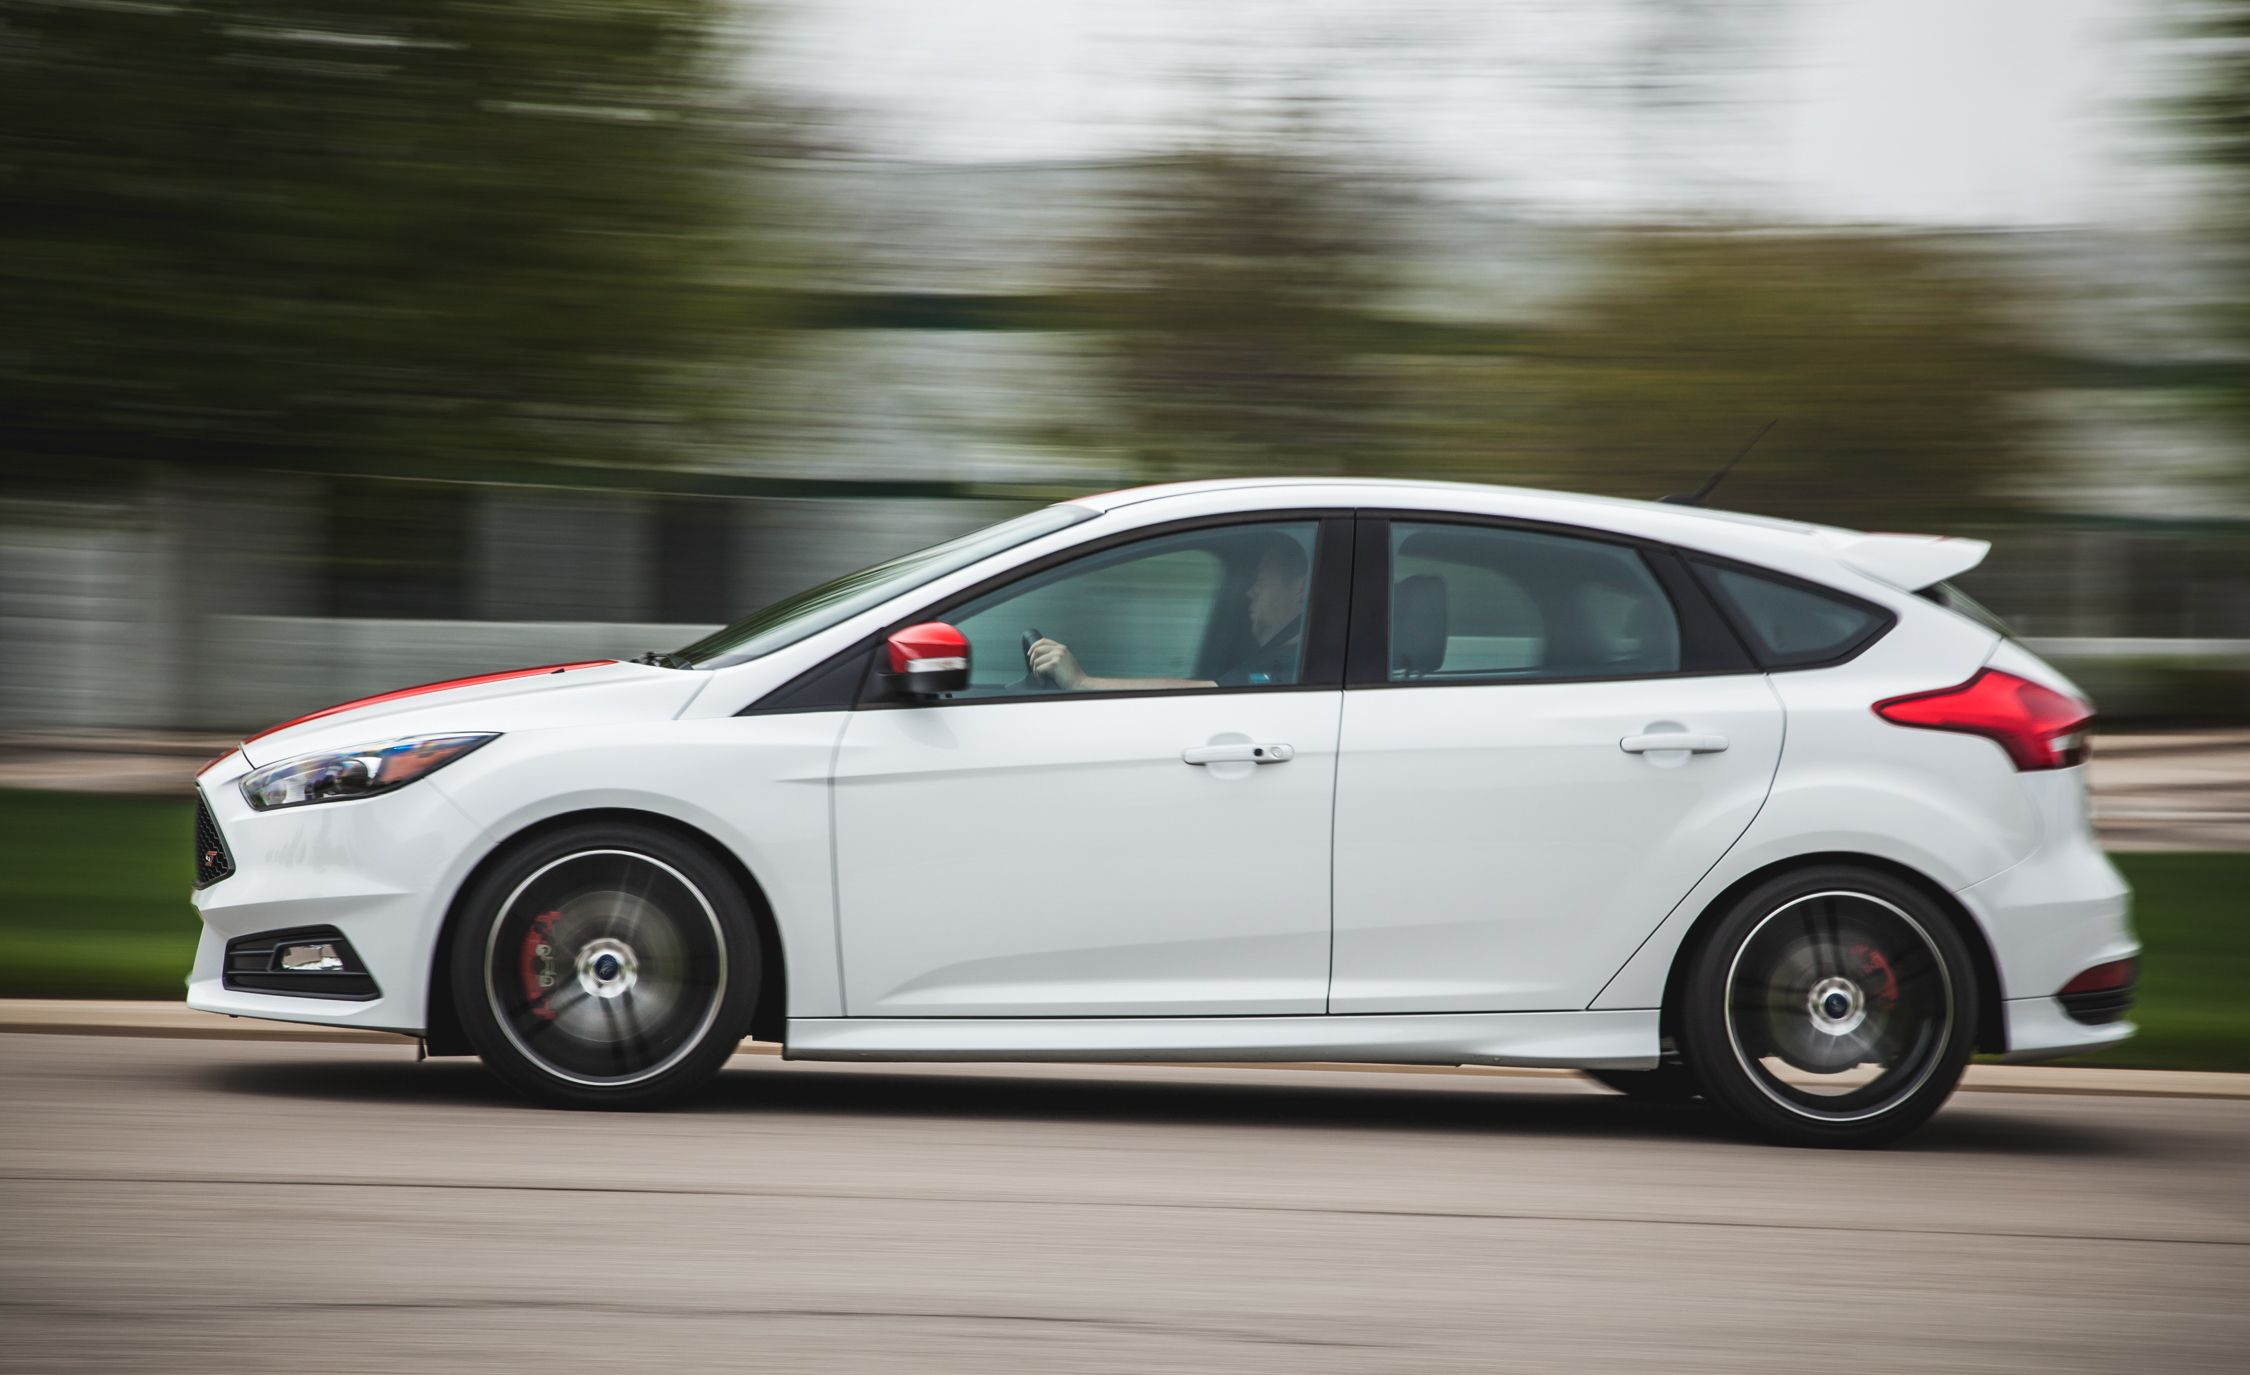 Ford Focus ST Reviews | Ford Focus ST Price, Photos, and Specs | Car ...